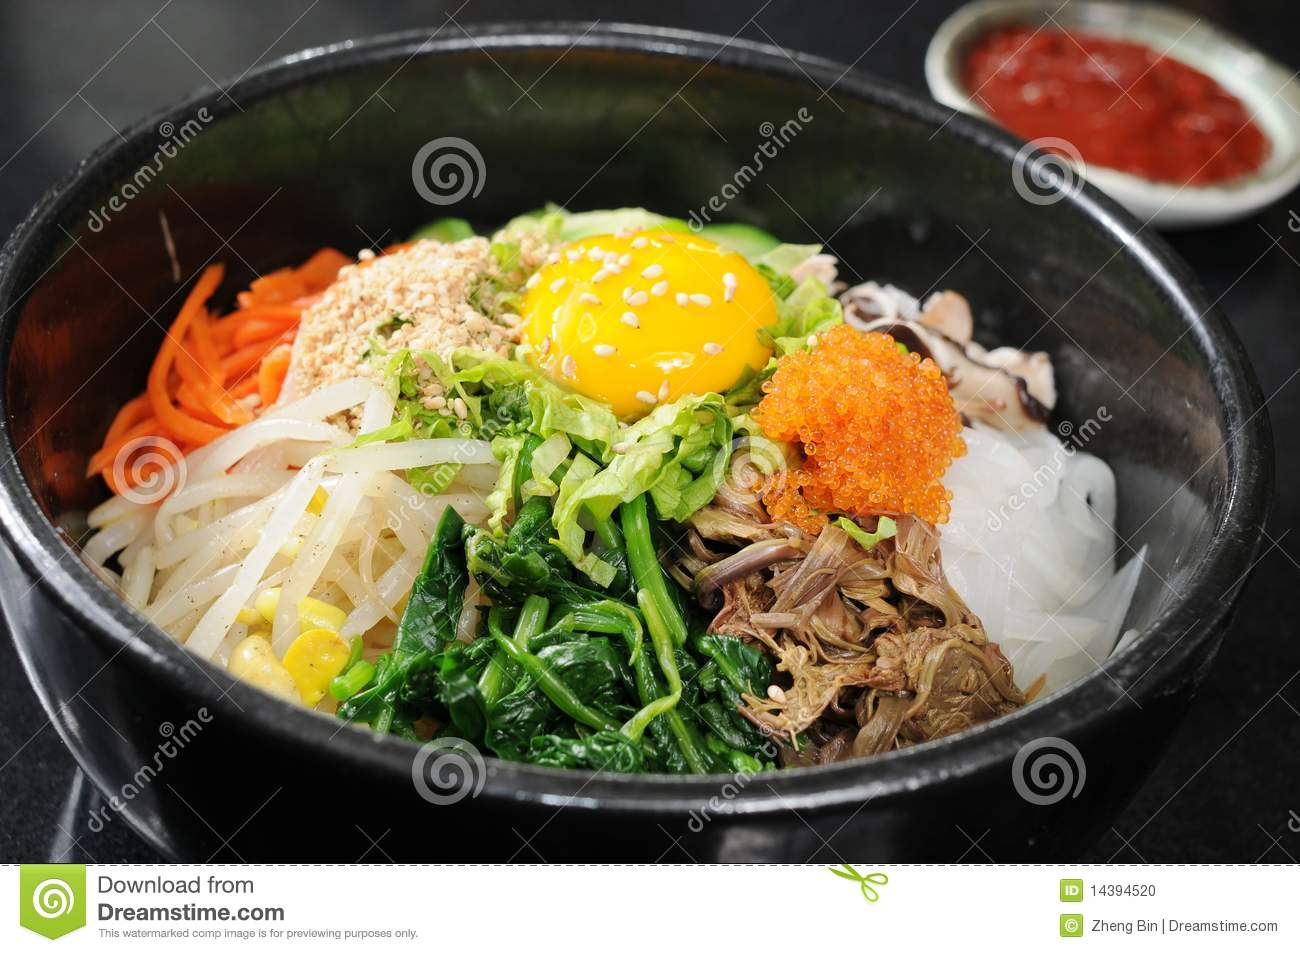 Cuisine cor enne photo stock image 14394520 for Cuisine coreenne